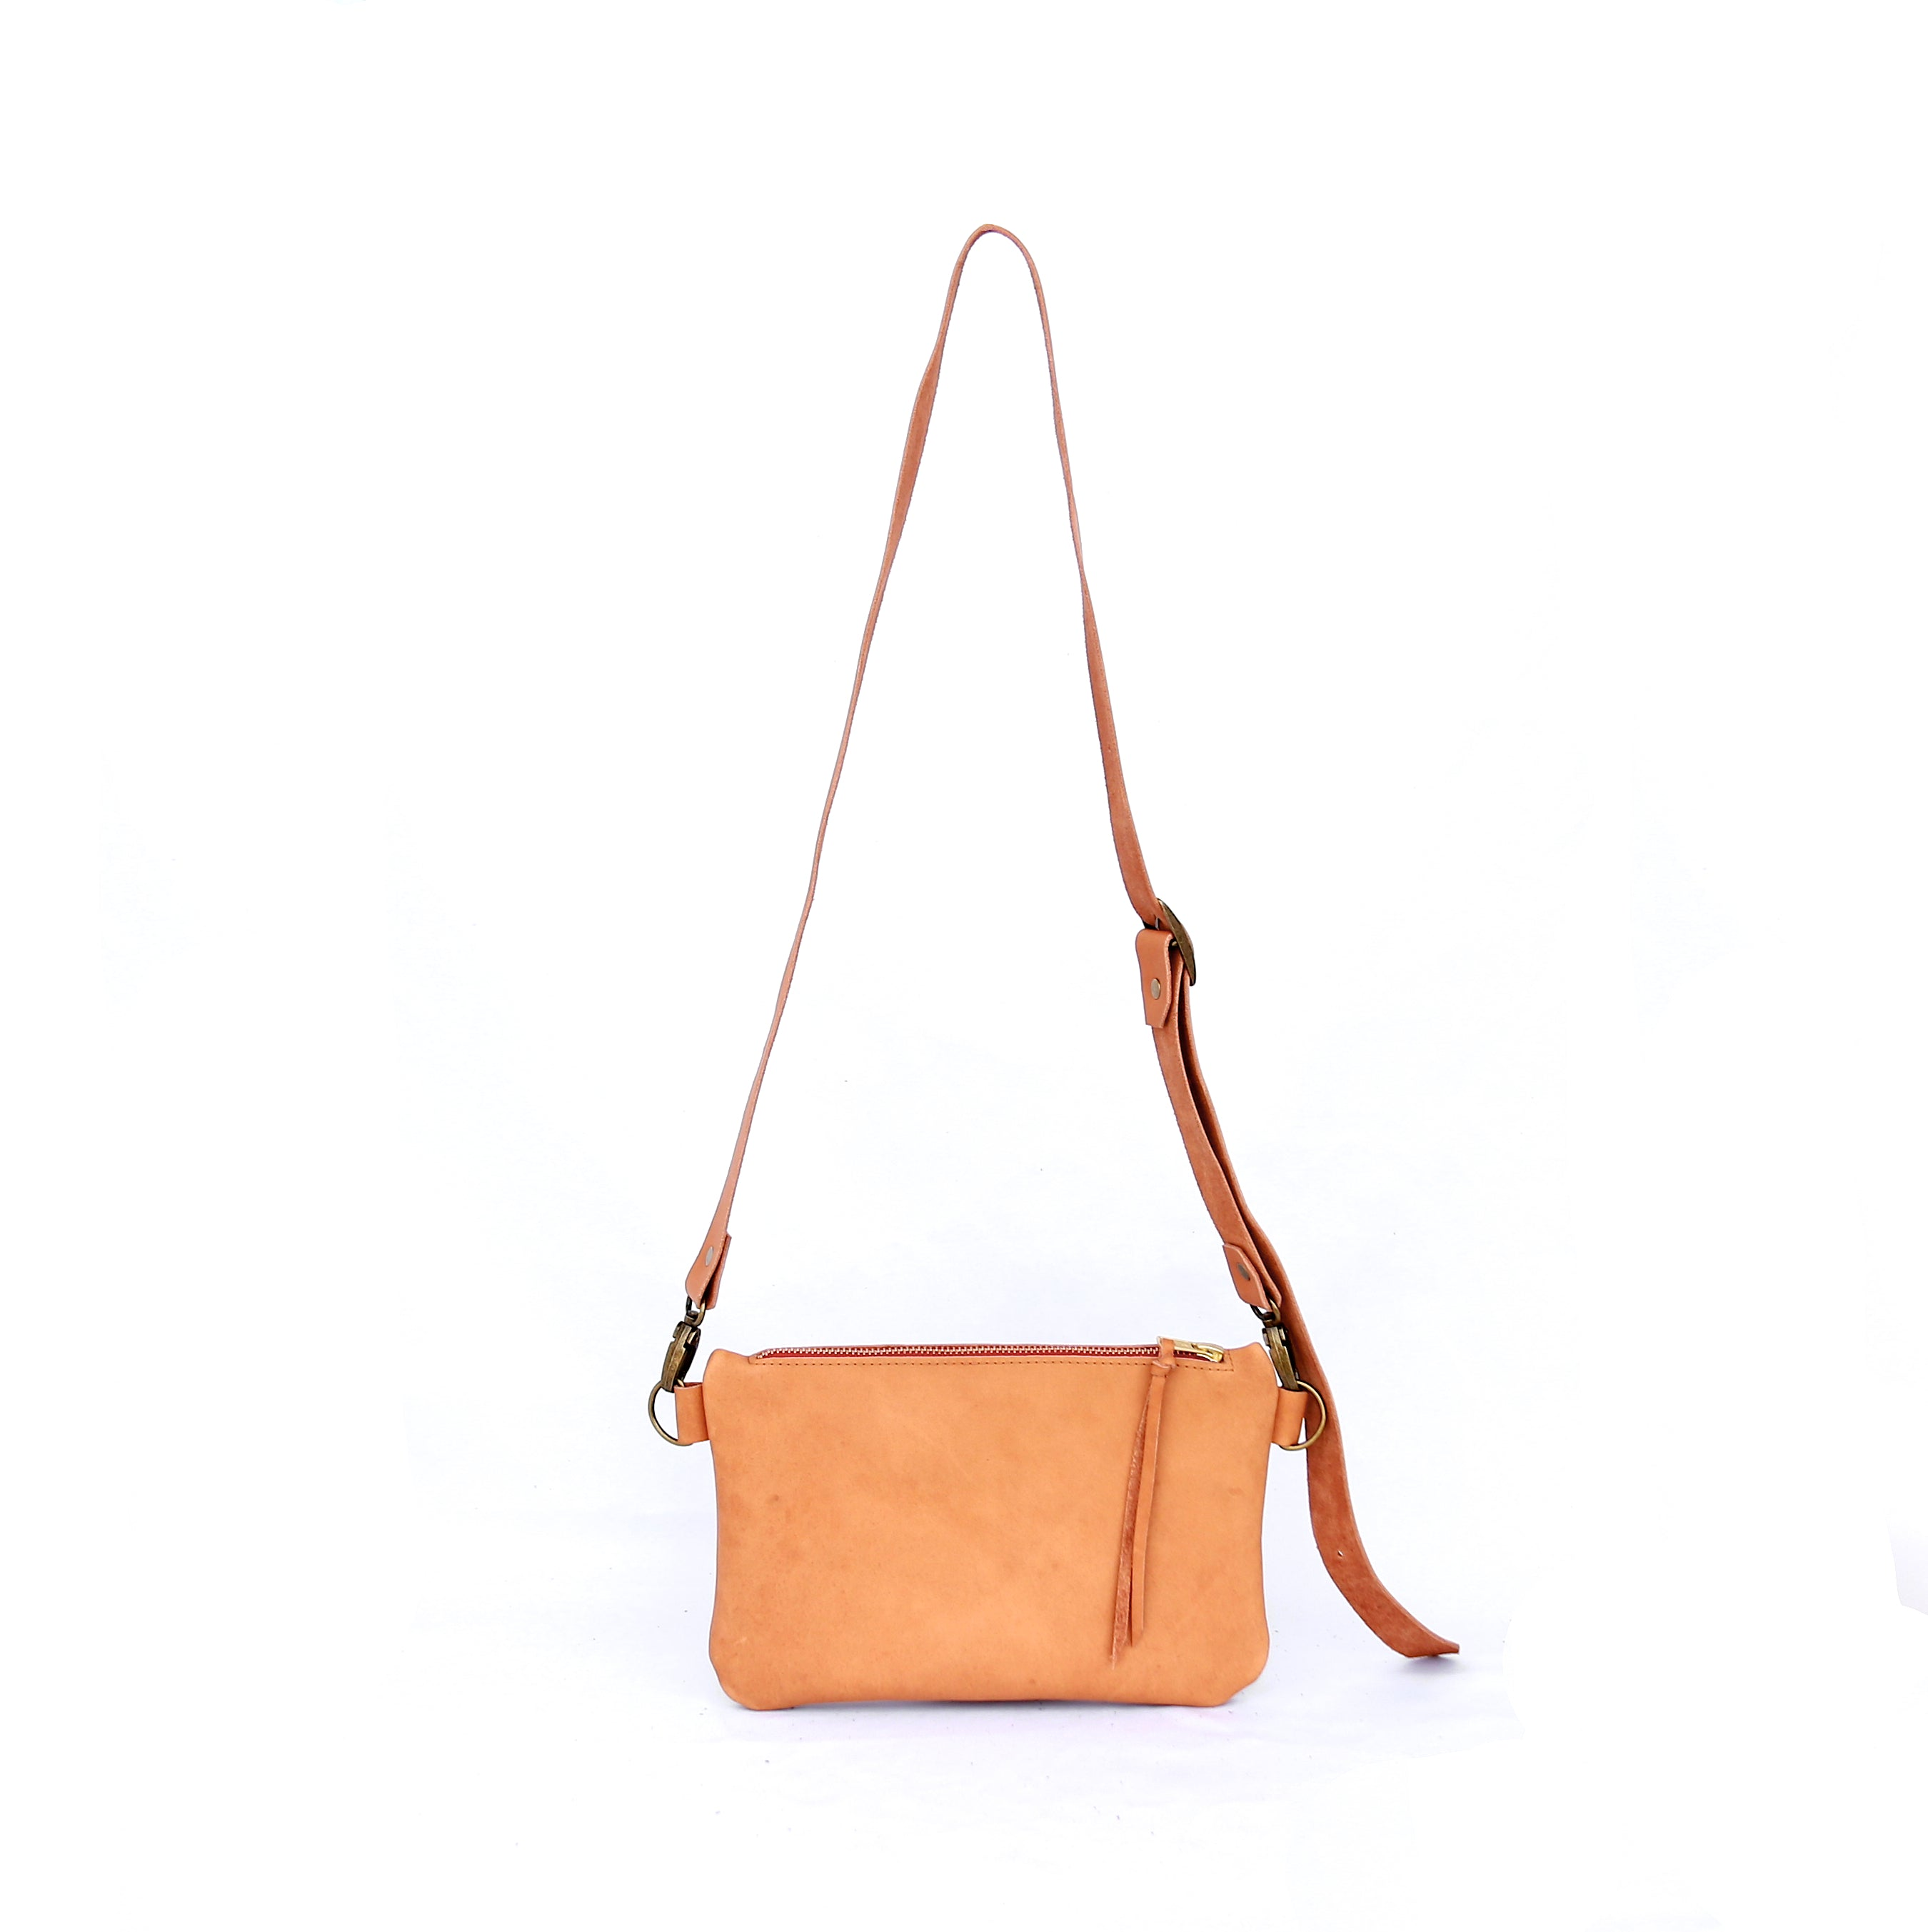 The Dime Bag in Tan Leather - handcrafted by Market Canvas Leather in Tofino, BC, Canada